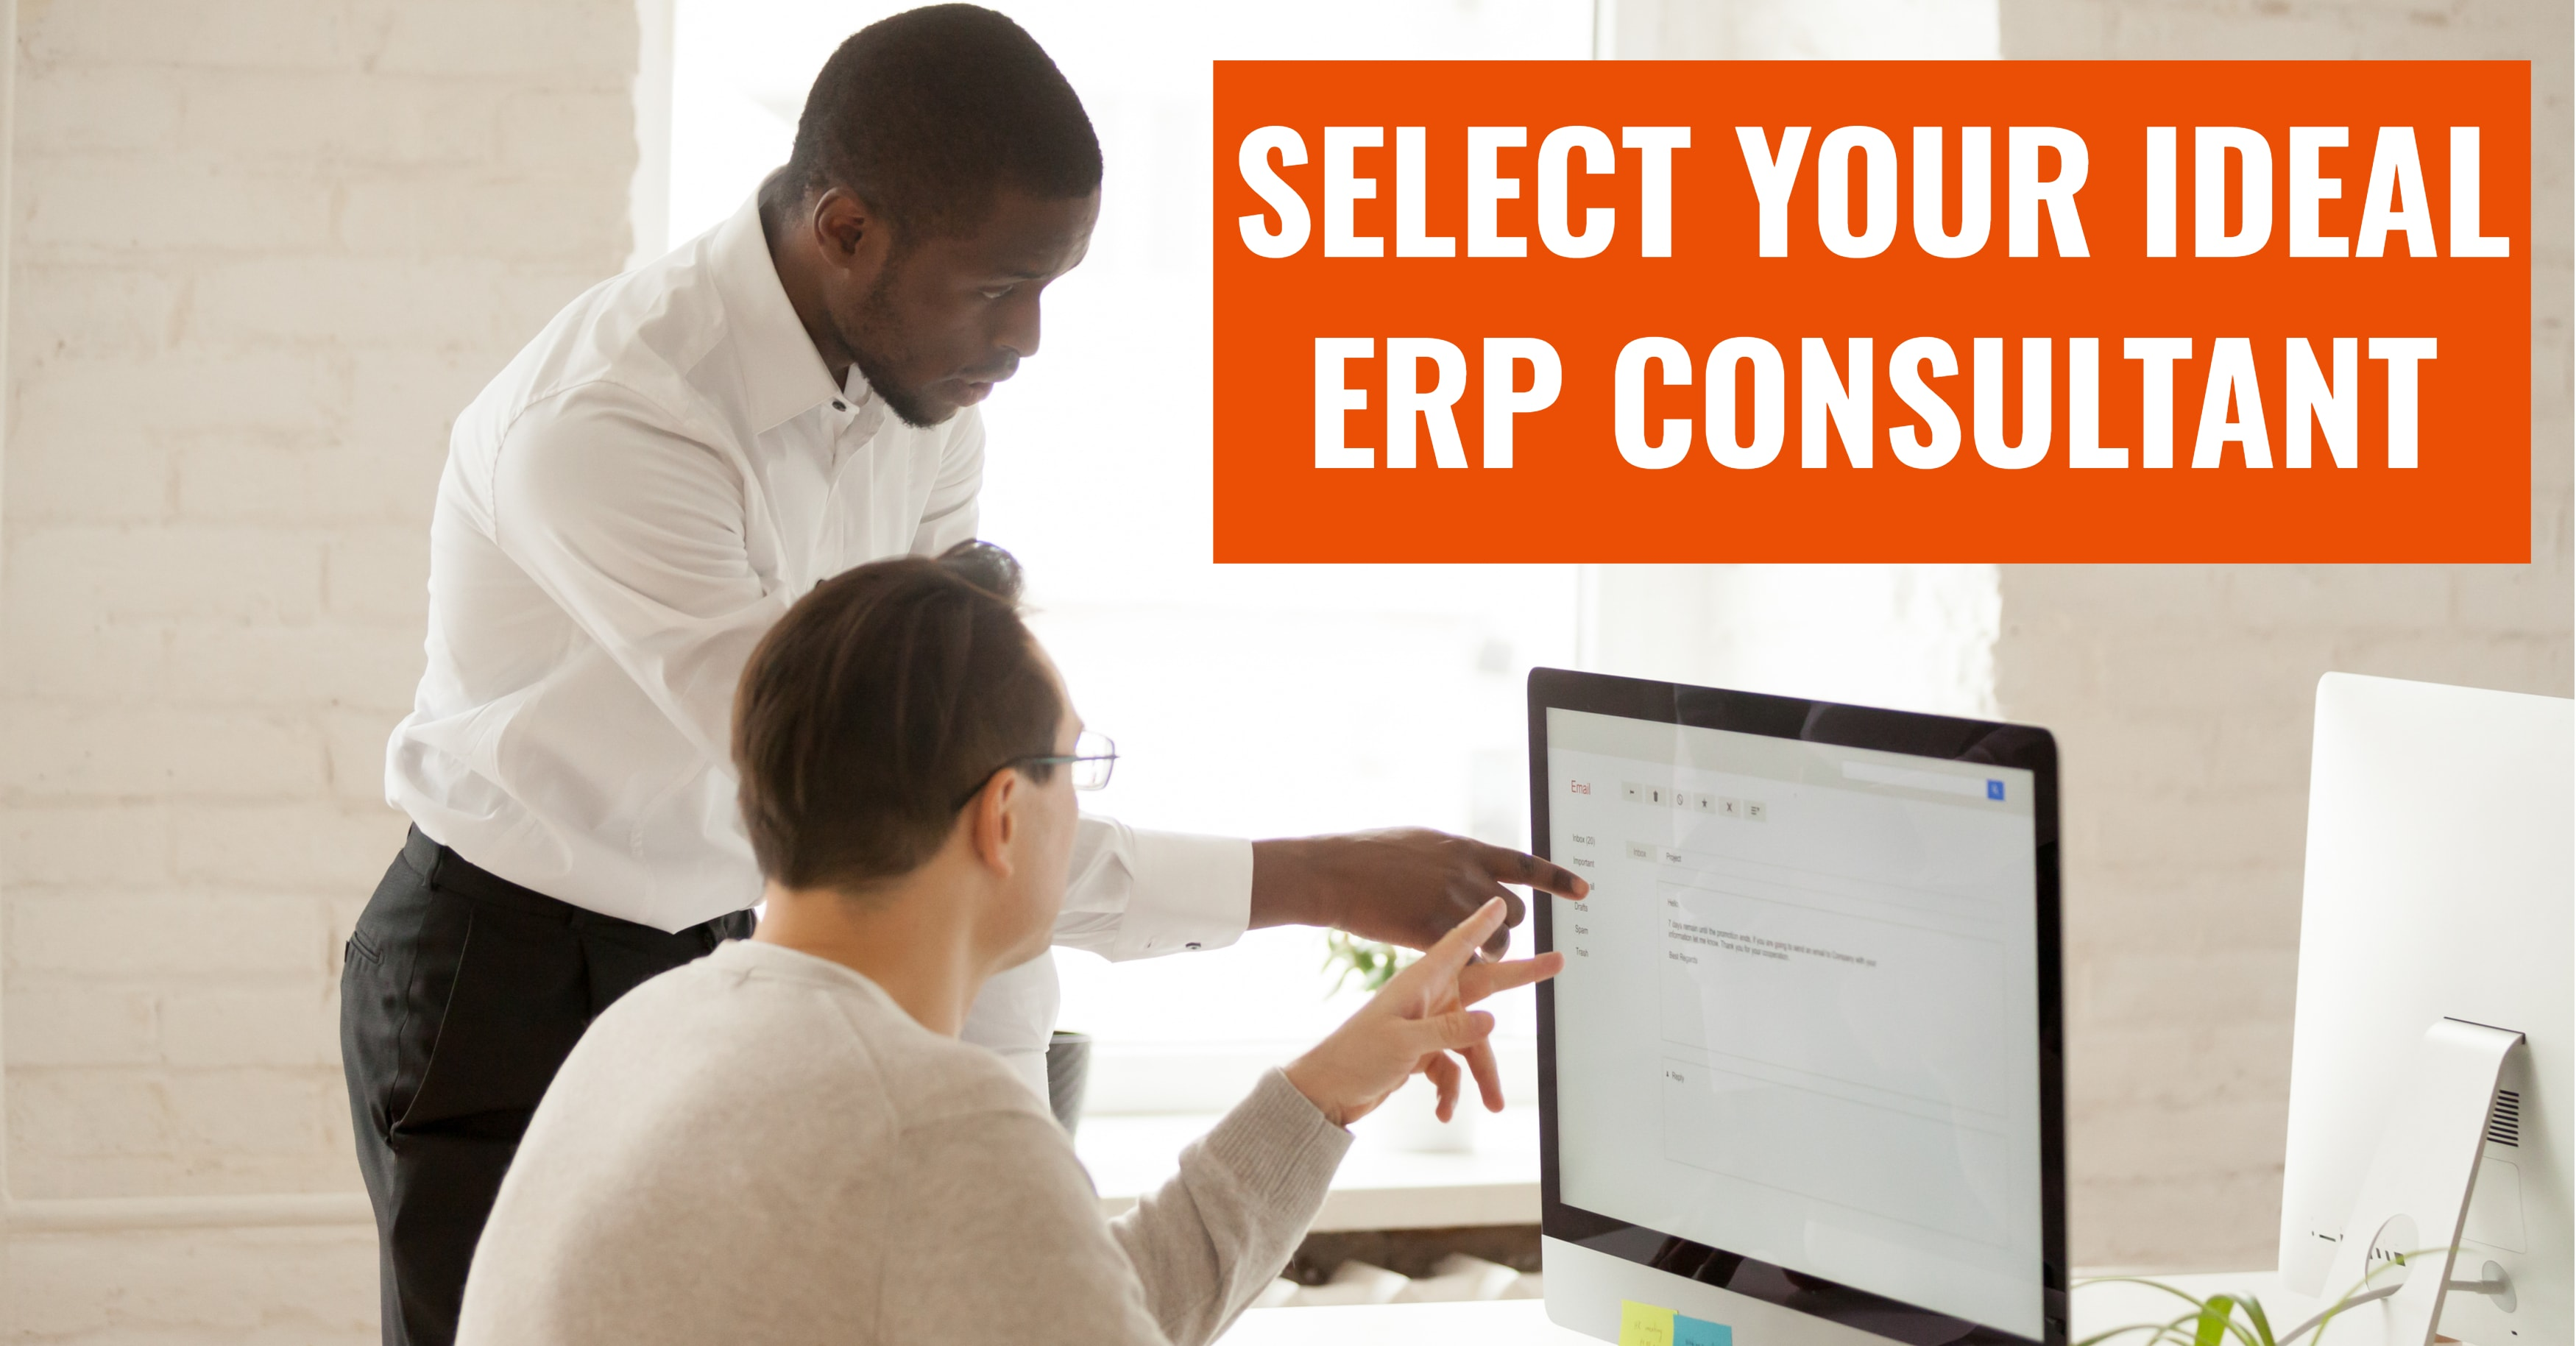 Select Your Ideal ERP Consulting Partner